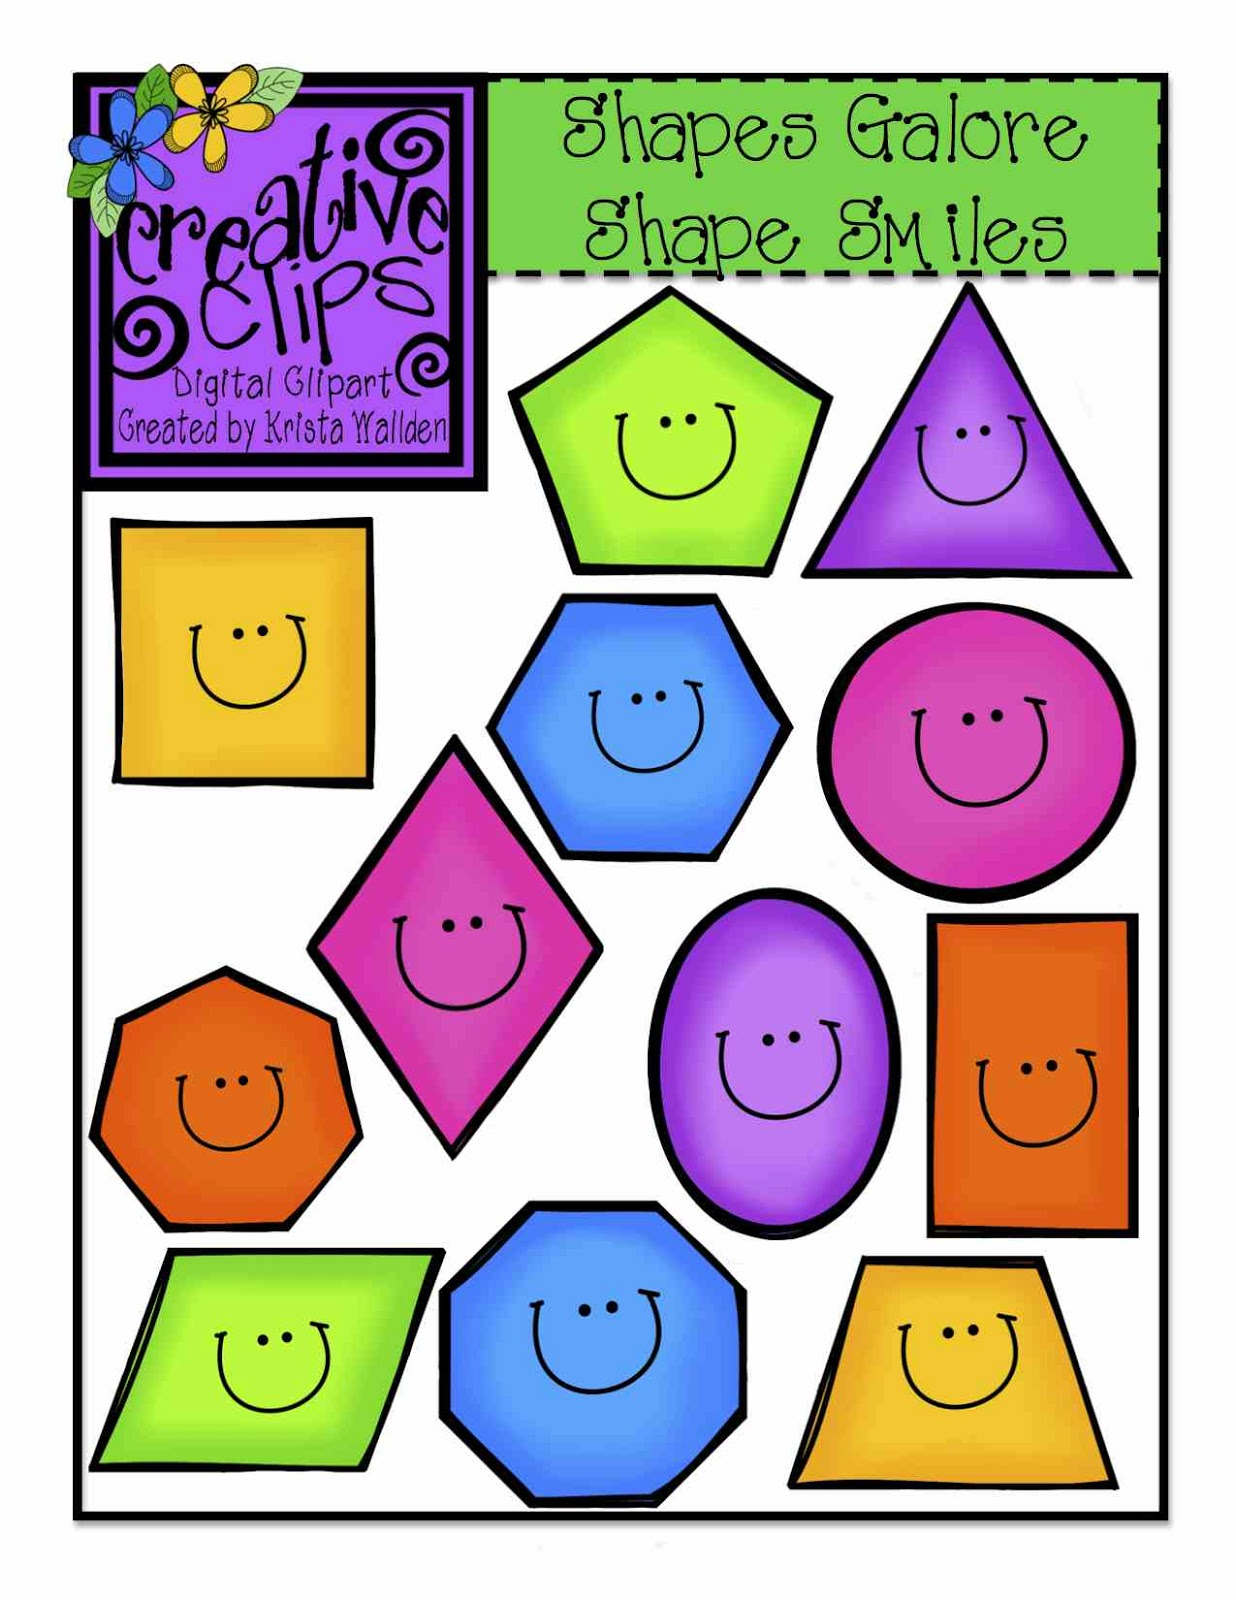 The Creative Chalkboard Free Puzzle Piece Clipart And